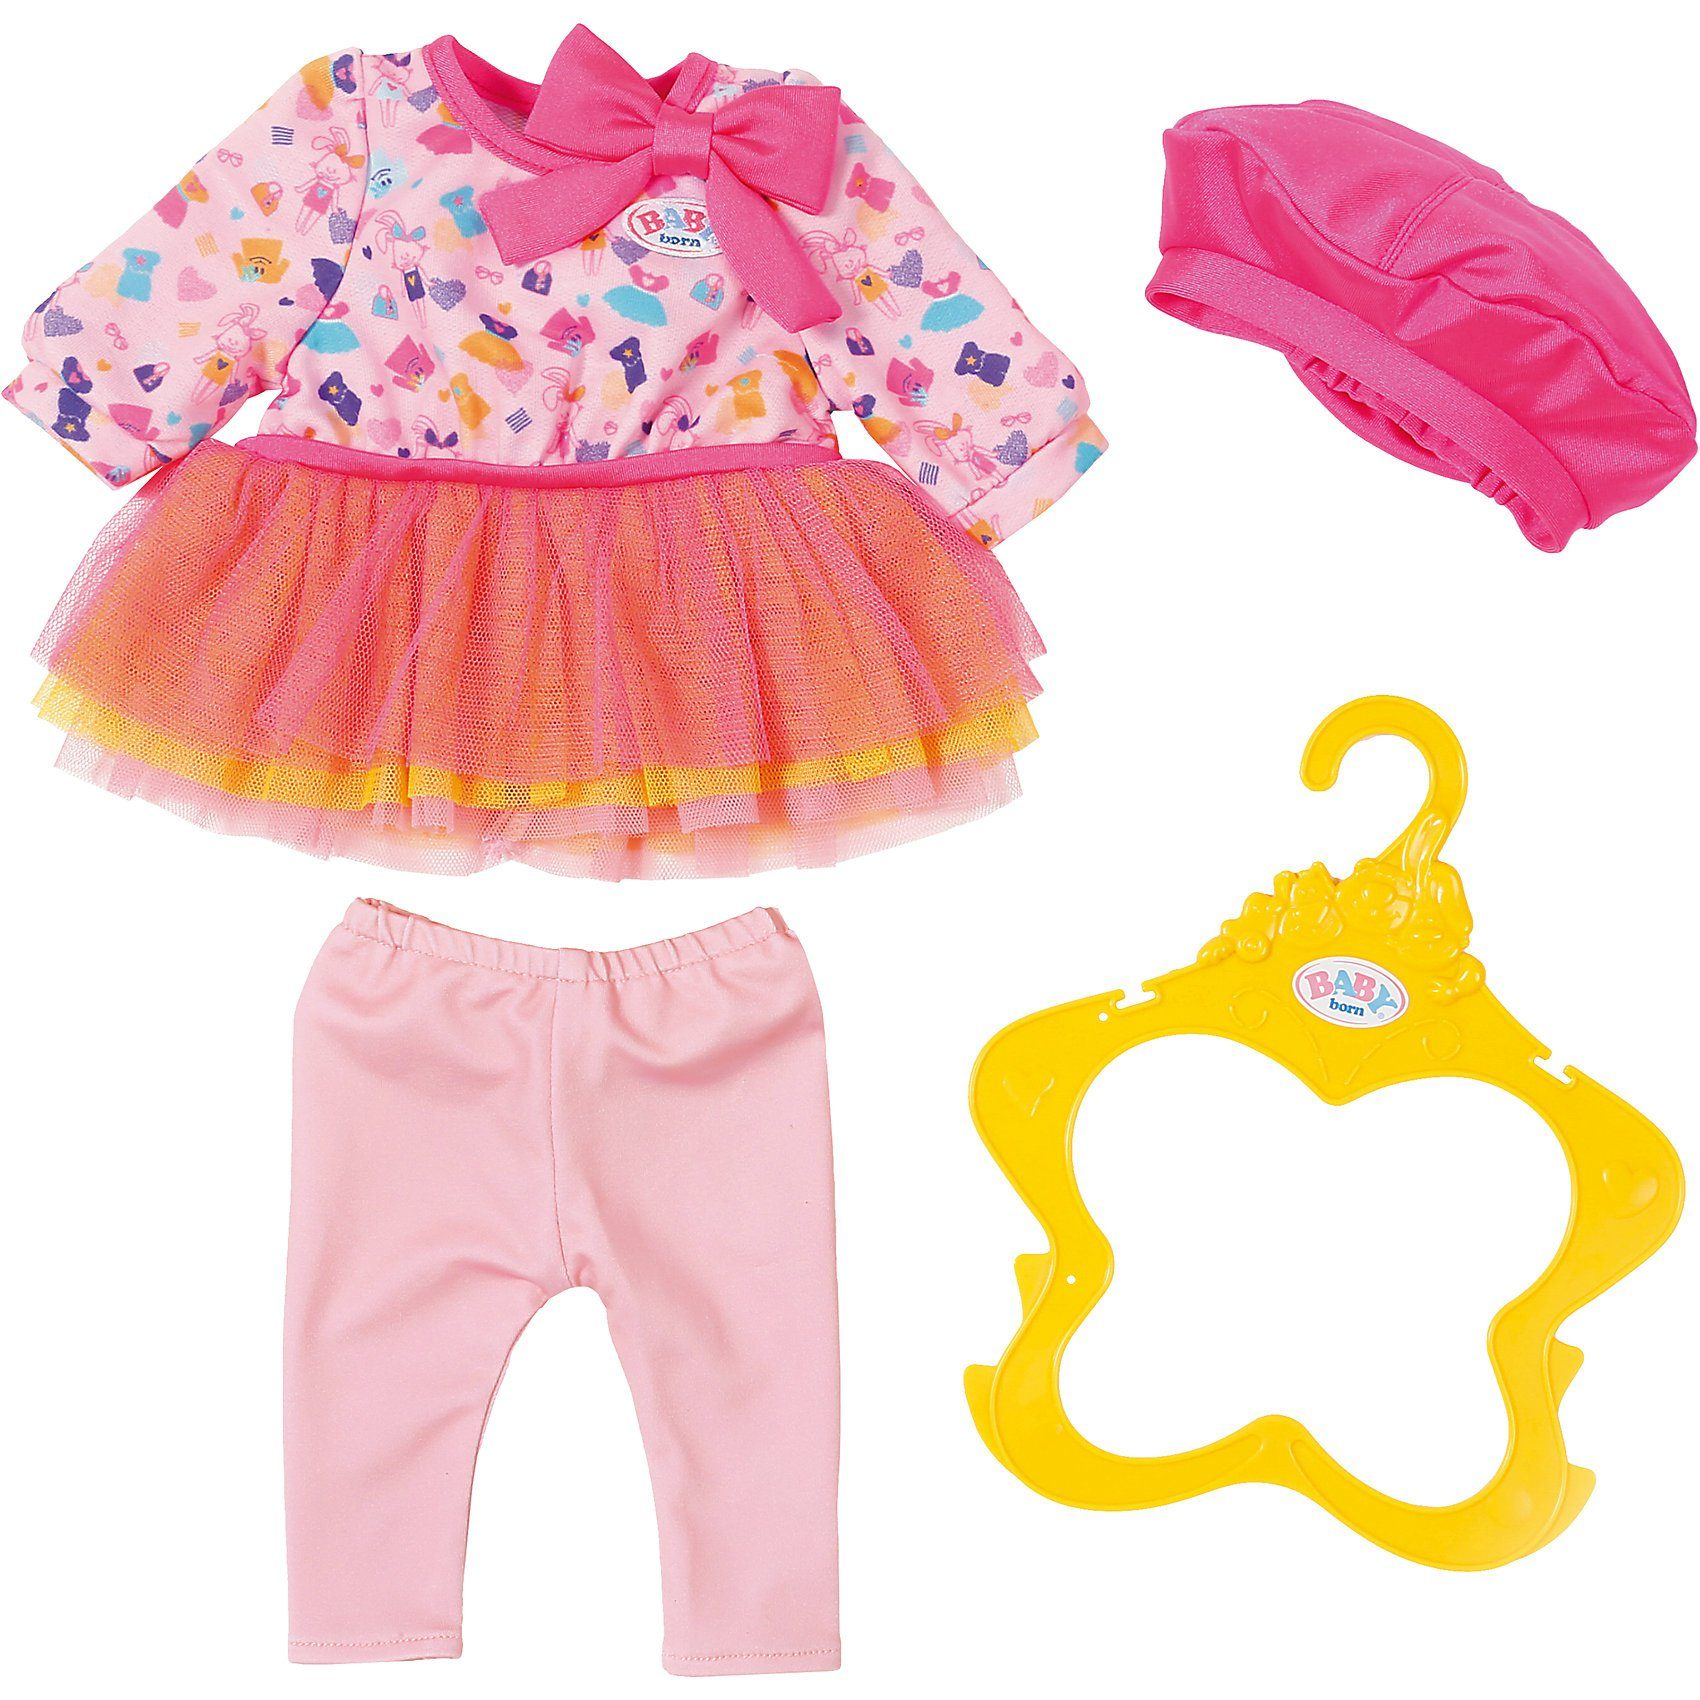 Zapf Creation® BABY born® Fashion Kollektion Gemustert